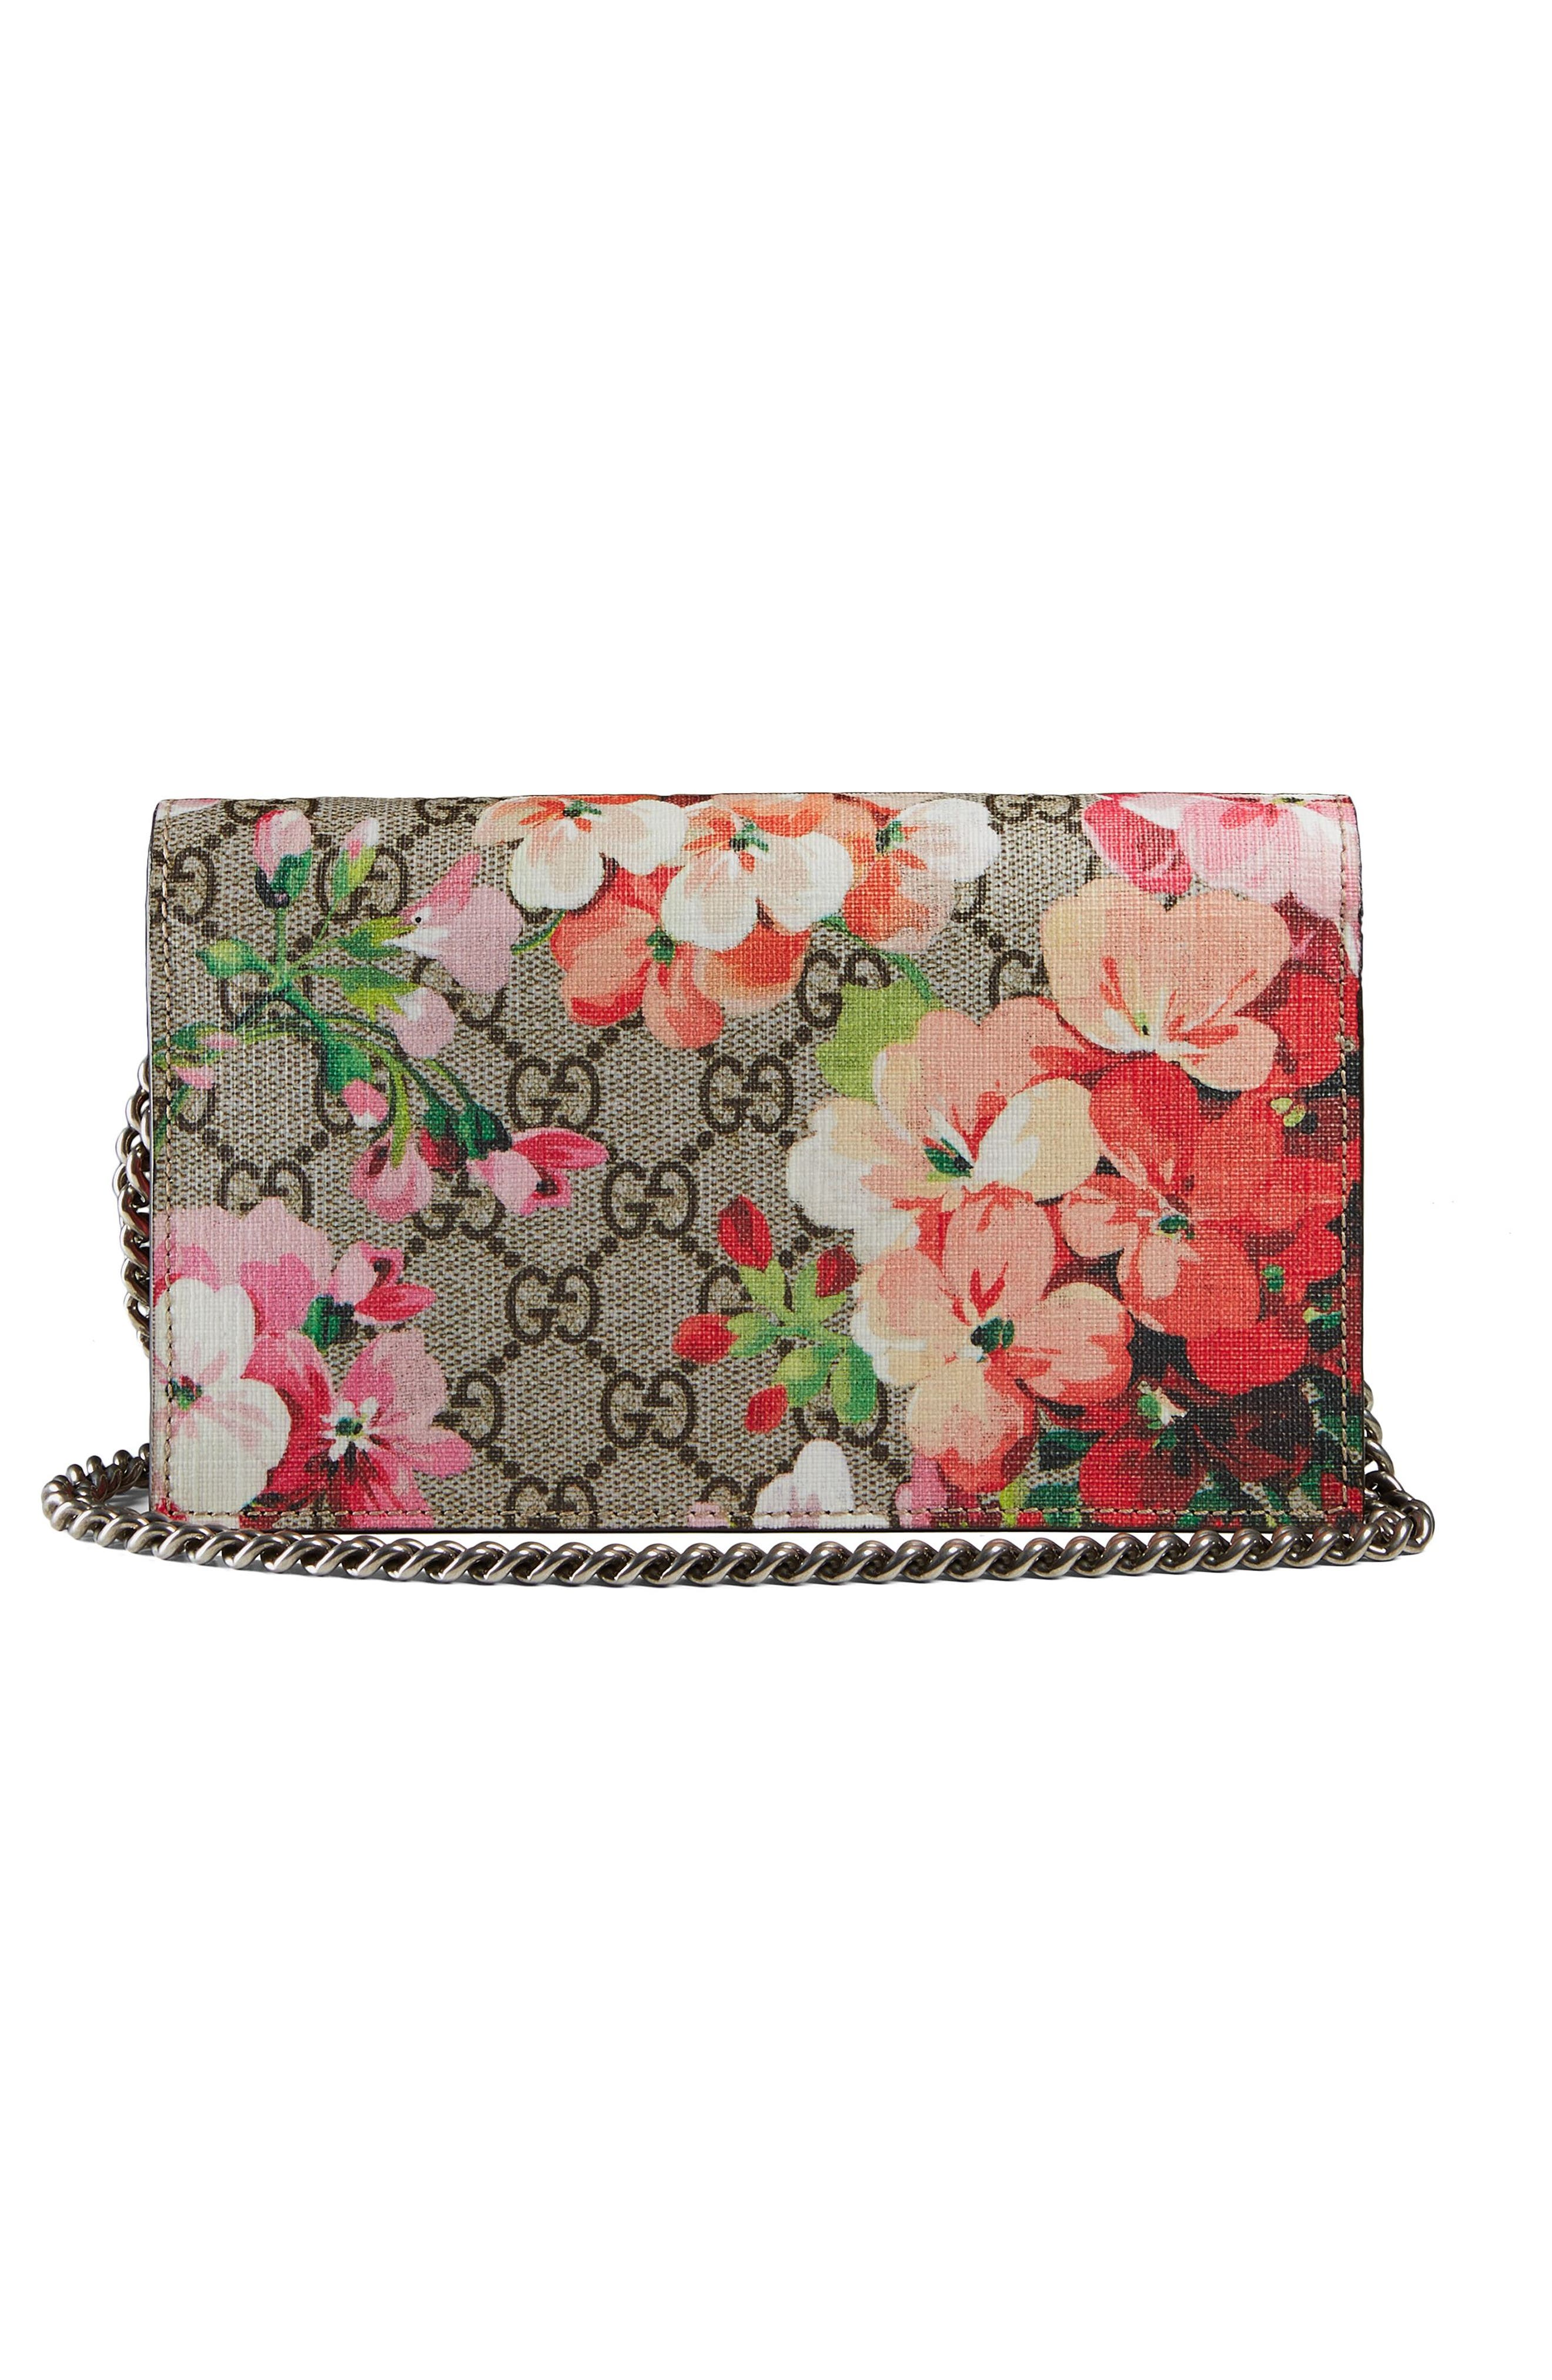 GG Blooms Supreme Canvas Wallet on a Chain,                             Alternate thumbnail 3, color,                             Beige Ebony Multi/Dry Rose